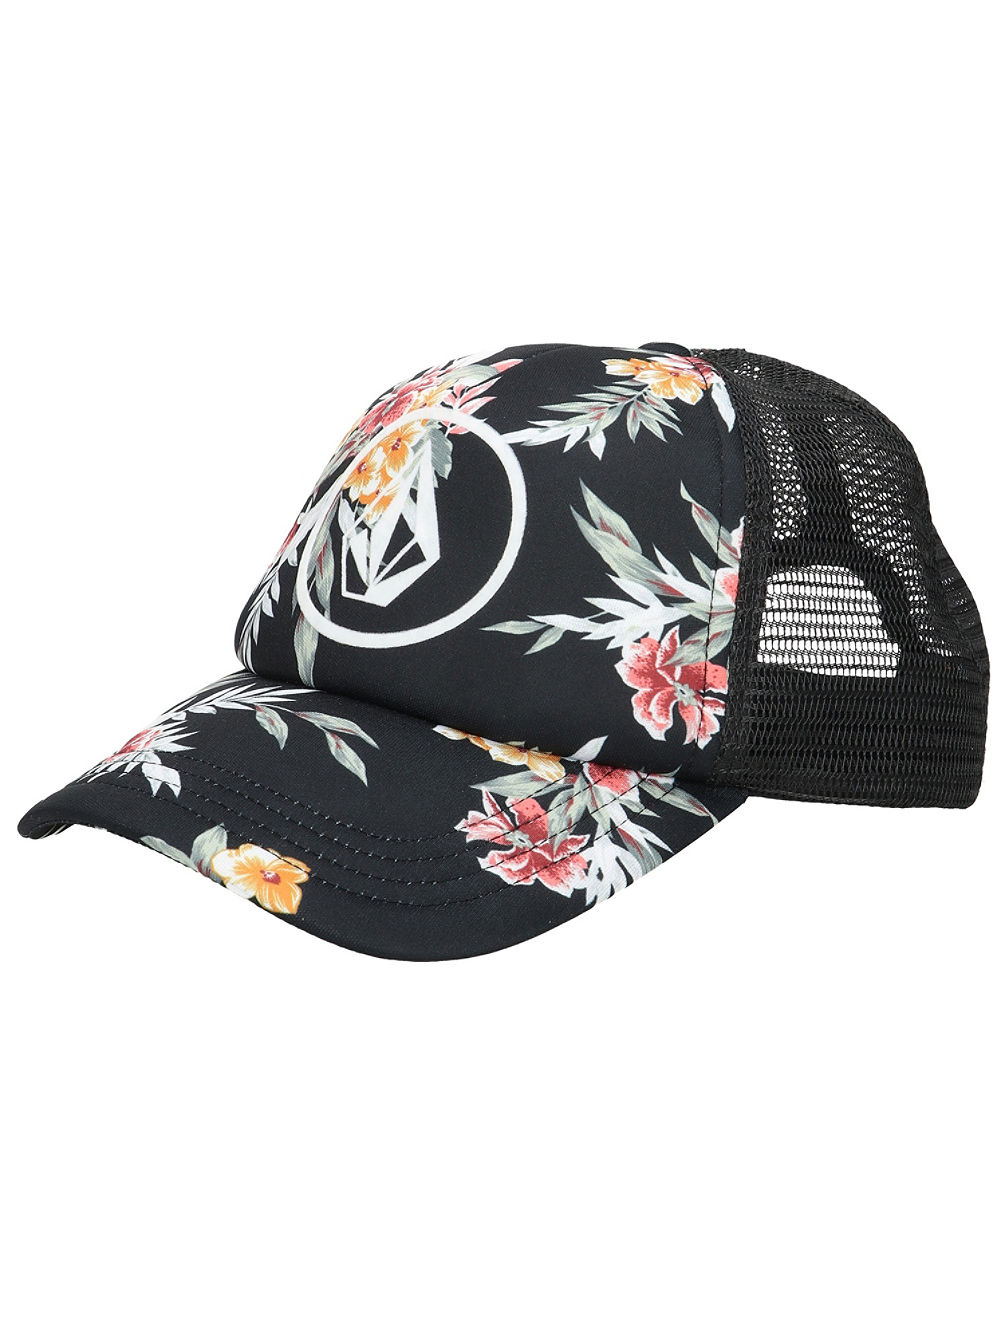 00611a4e6f2c1 Buy Volcom Good Timez Cap online at Blue Tomato